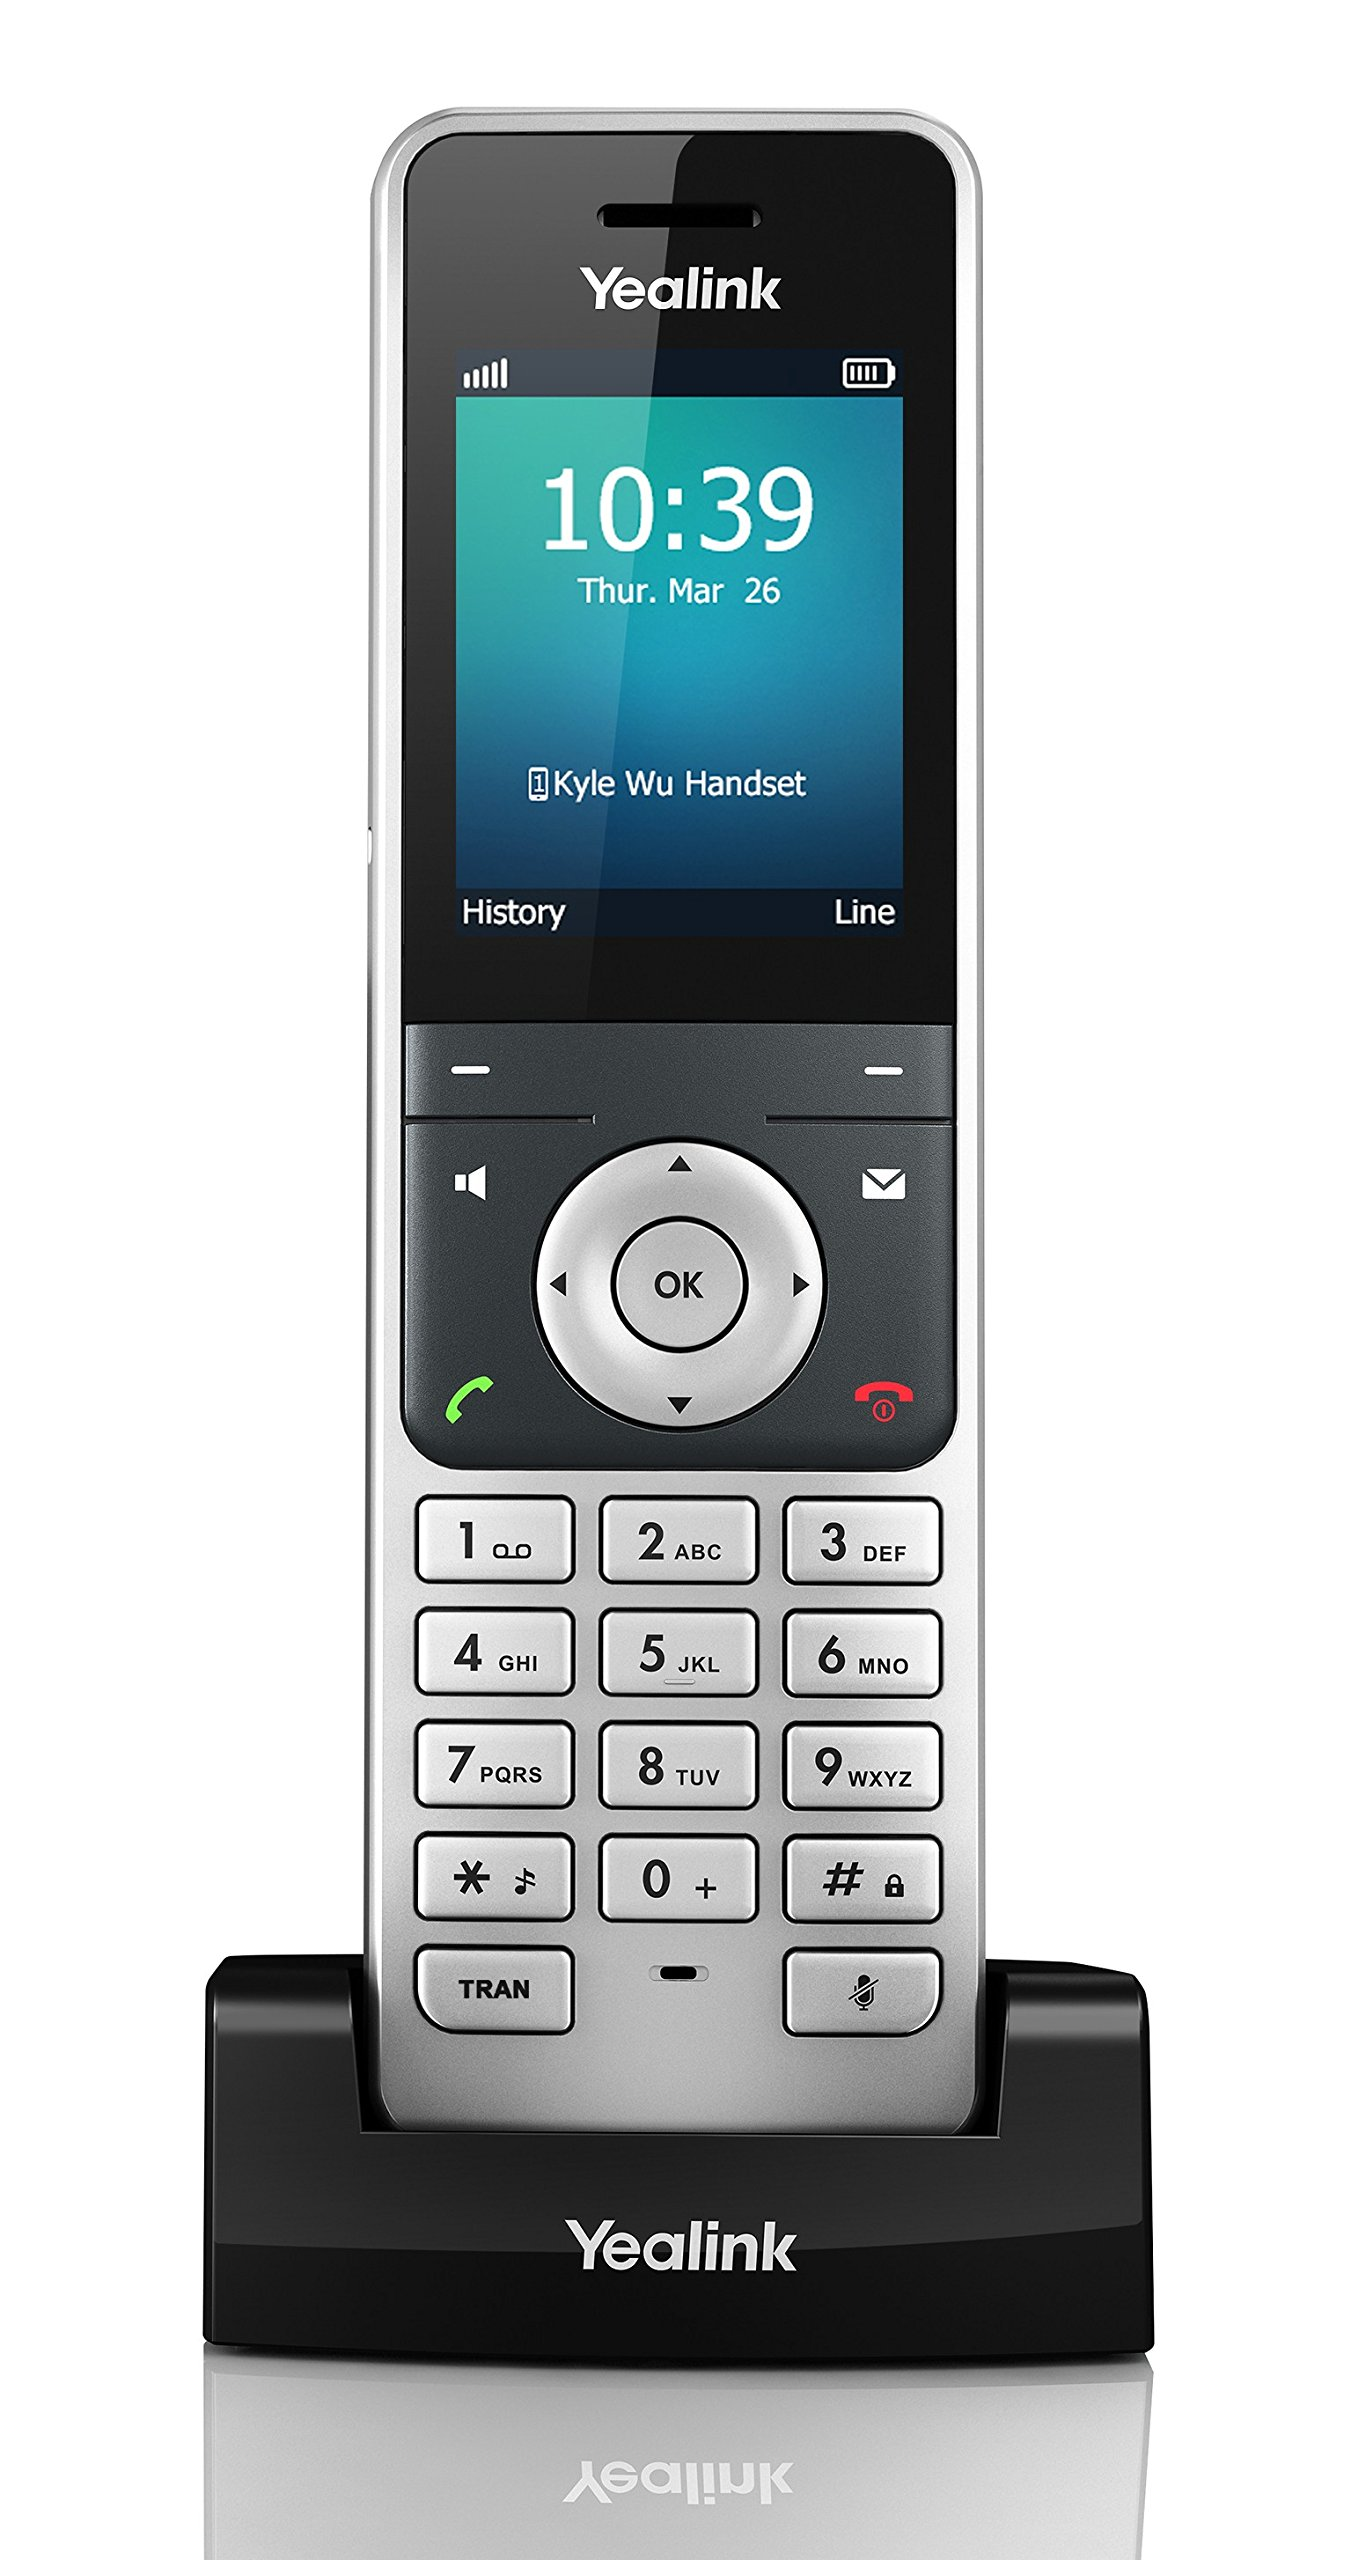 Yealink YEA-W56H HD DECT Expansion Handset for Cordless VoIP Phone and Device by Yealink